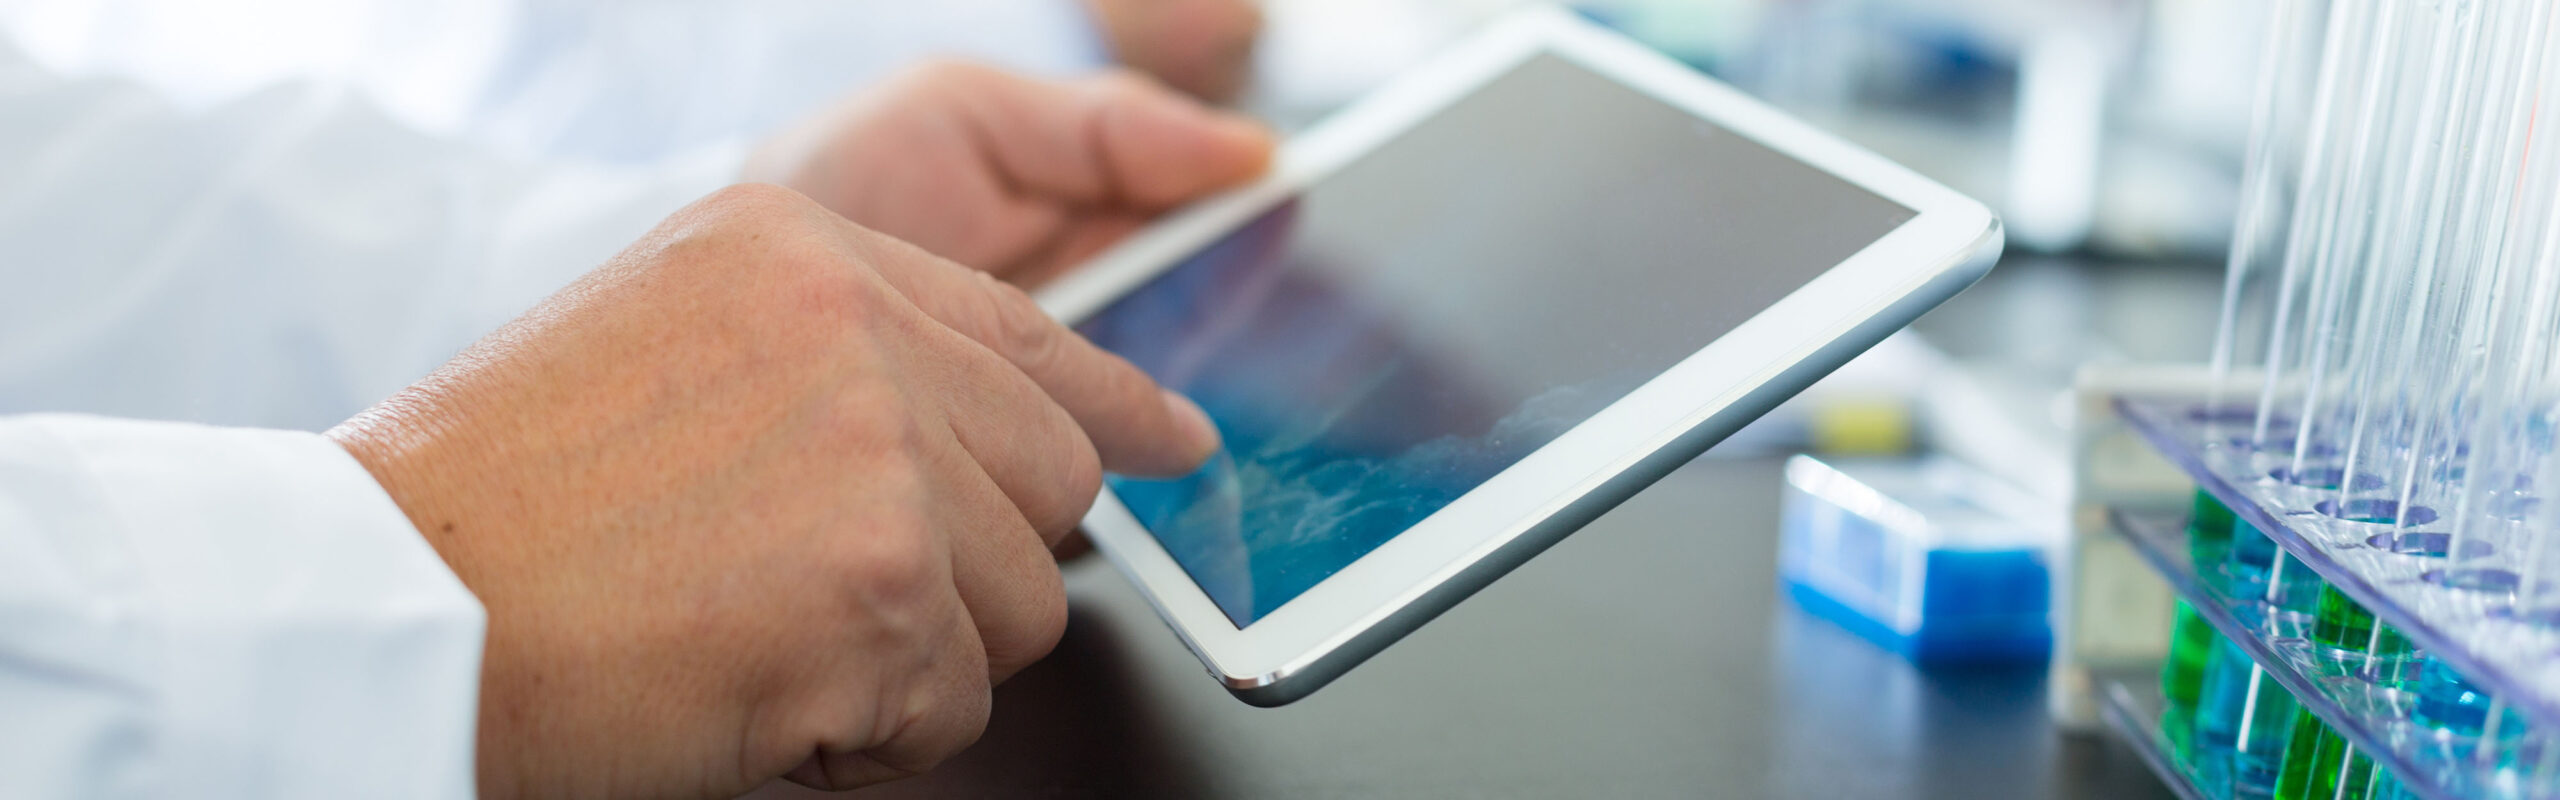 A chemist works on a tablet in the lab